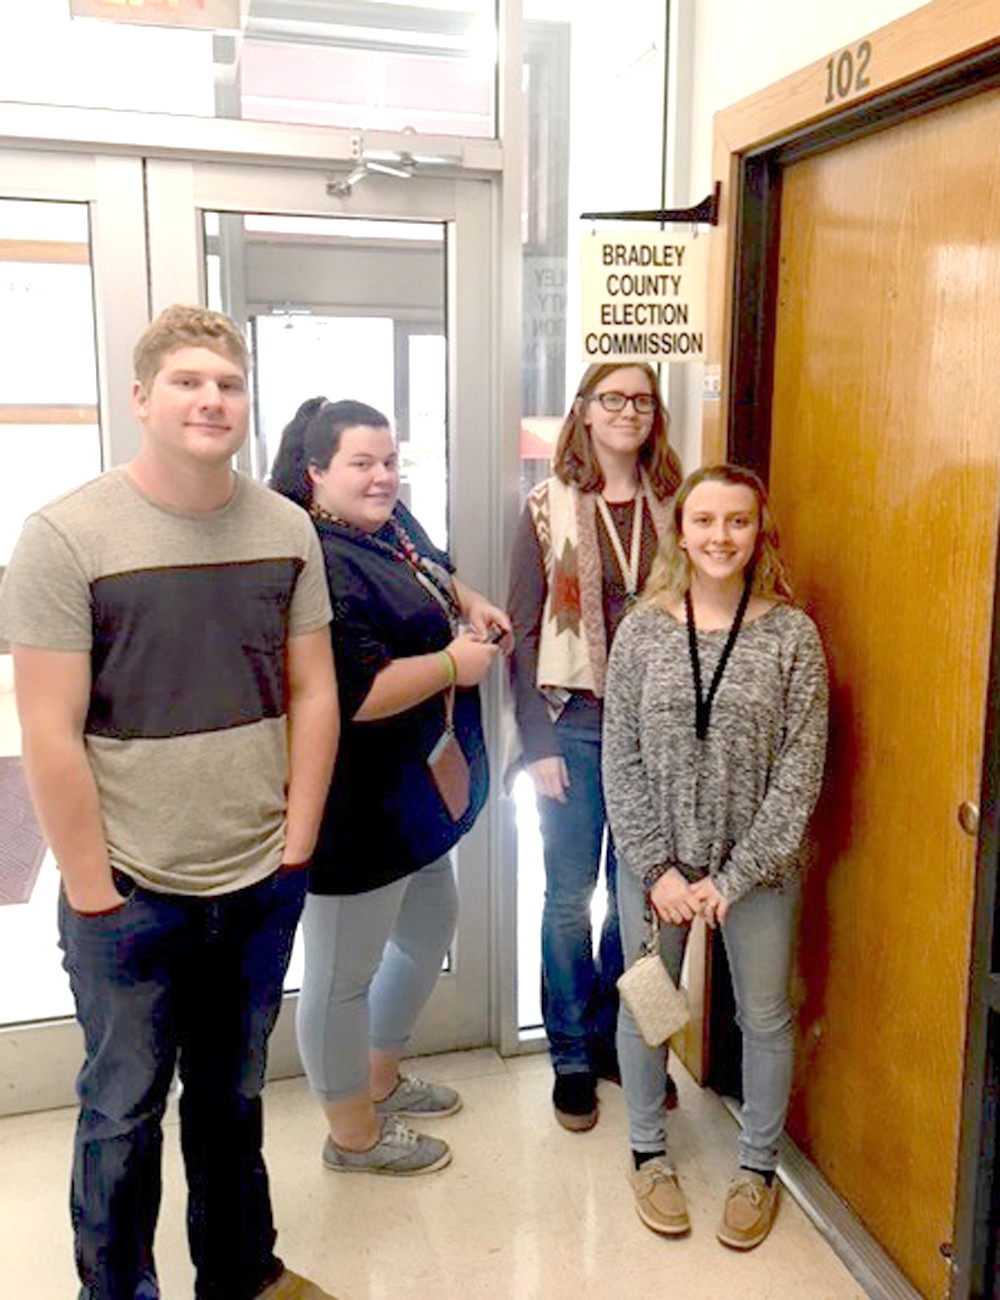 WALKER VALLEY High School students recently visited the Bradley County Election Commission while on a tour of local industries.